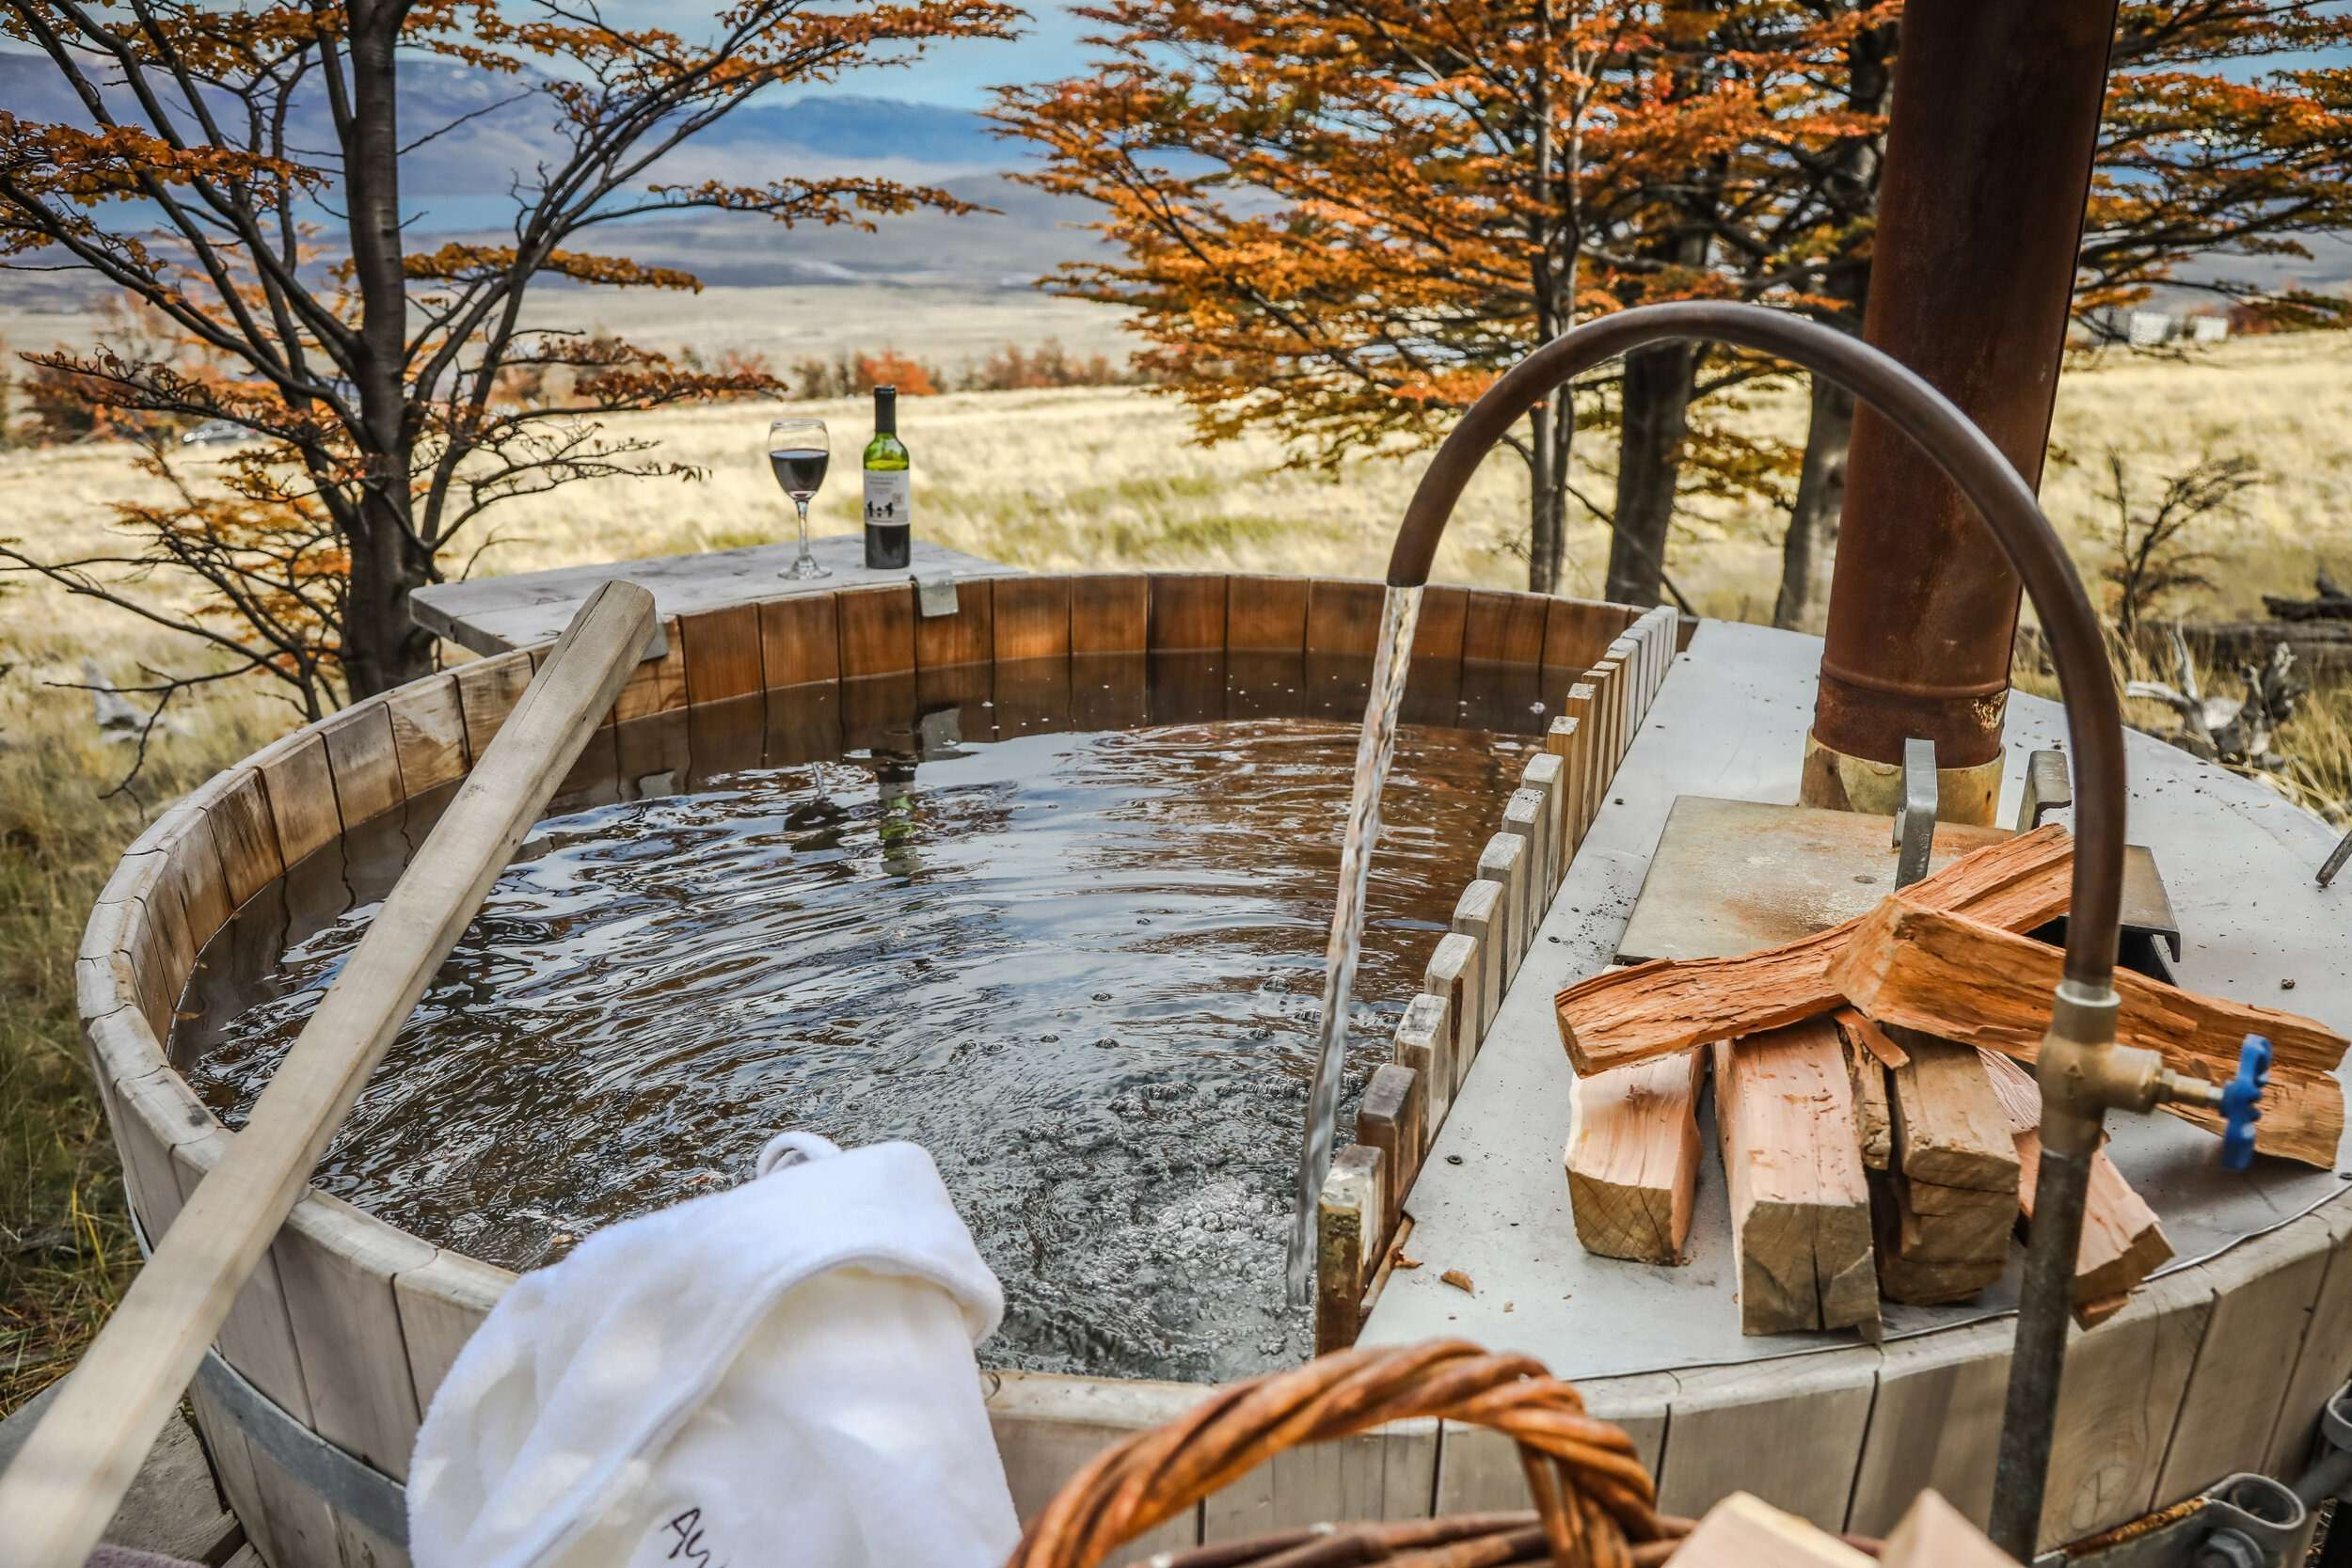 round wooden hot tub with mountain views at Awasi Patagonia, one of the most unique properties in the world